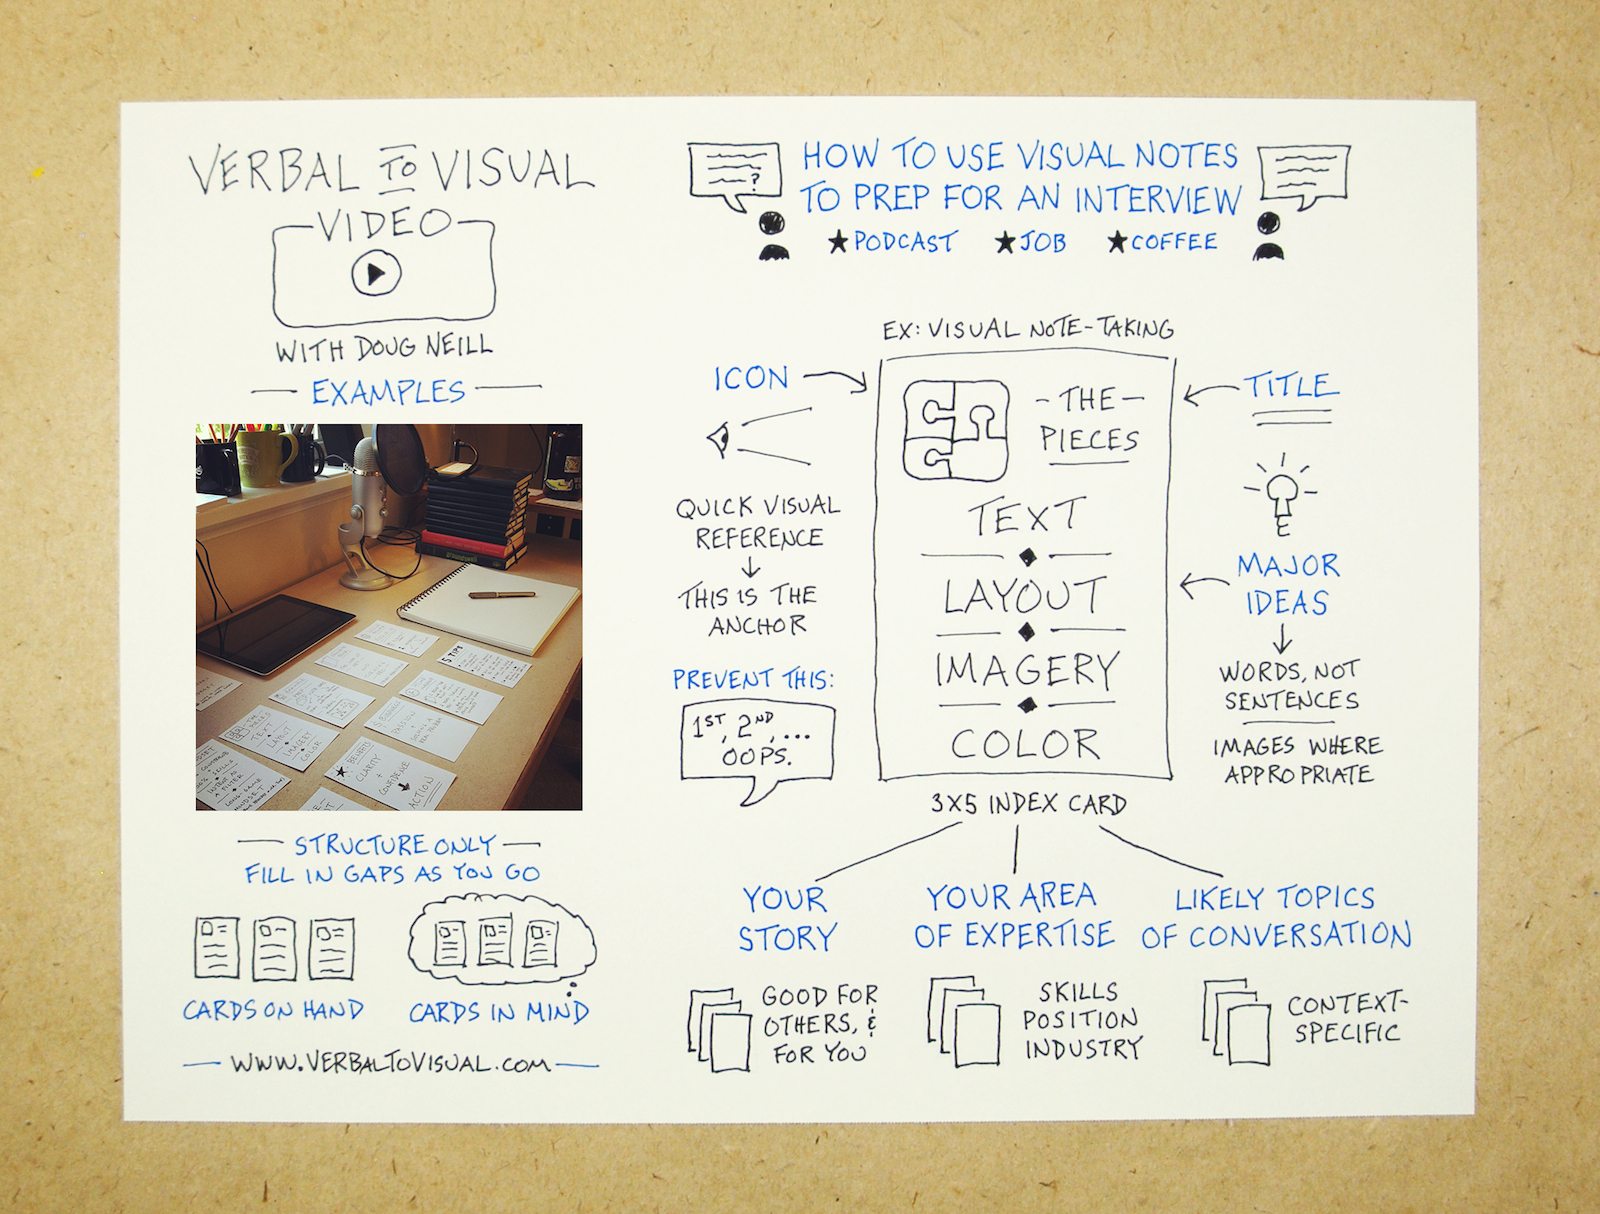 How To Use Visual Notes To Prepare For An Interview - Verbal To Visual Video - Doug Neill - visual note-taking, sketchnoting, doodling, podcast, job, coffee, skills, position, industry, context